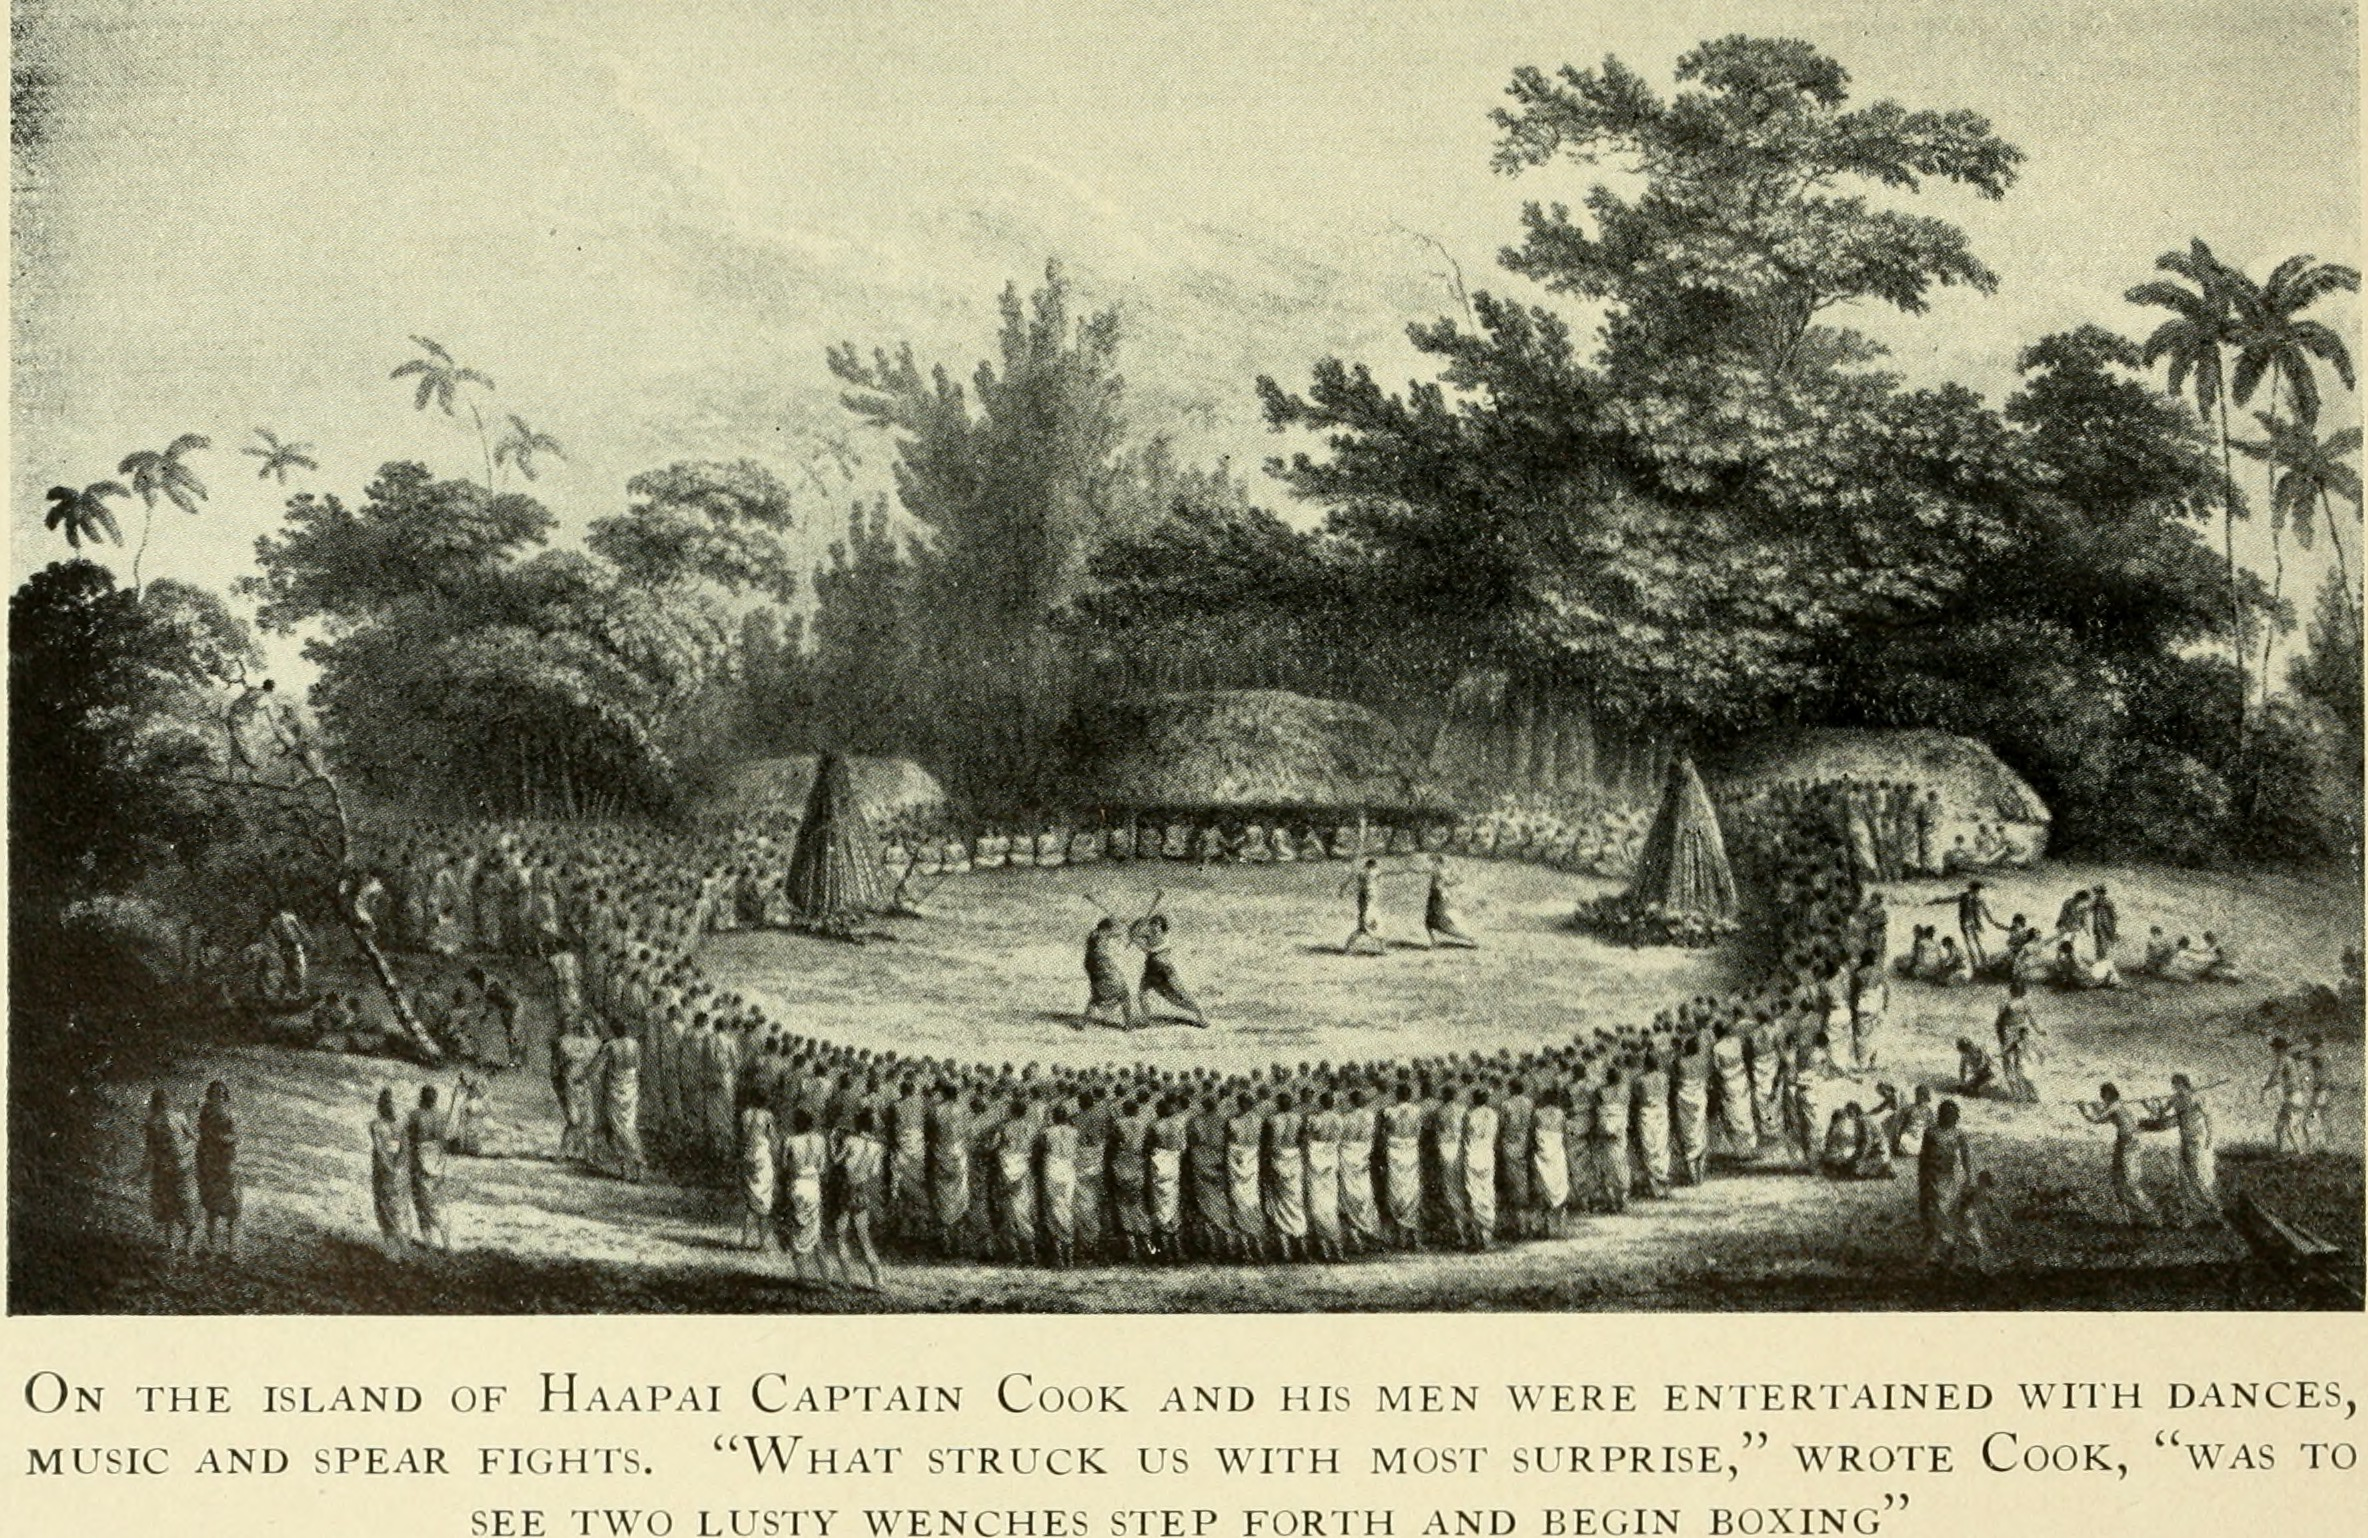 Captain James Cook welcomed on the island of Haapai, 1777 (1930 engraving)